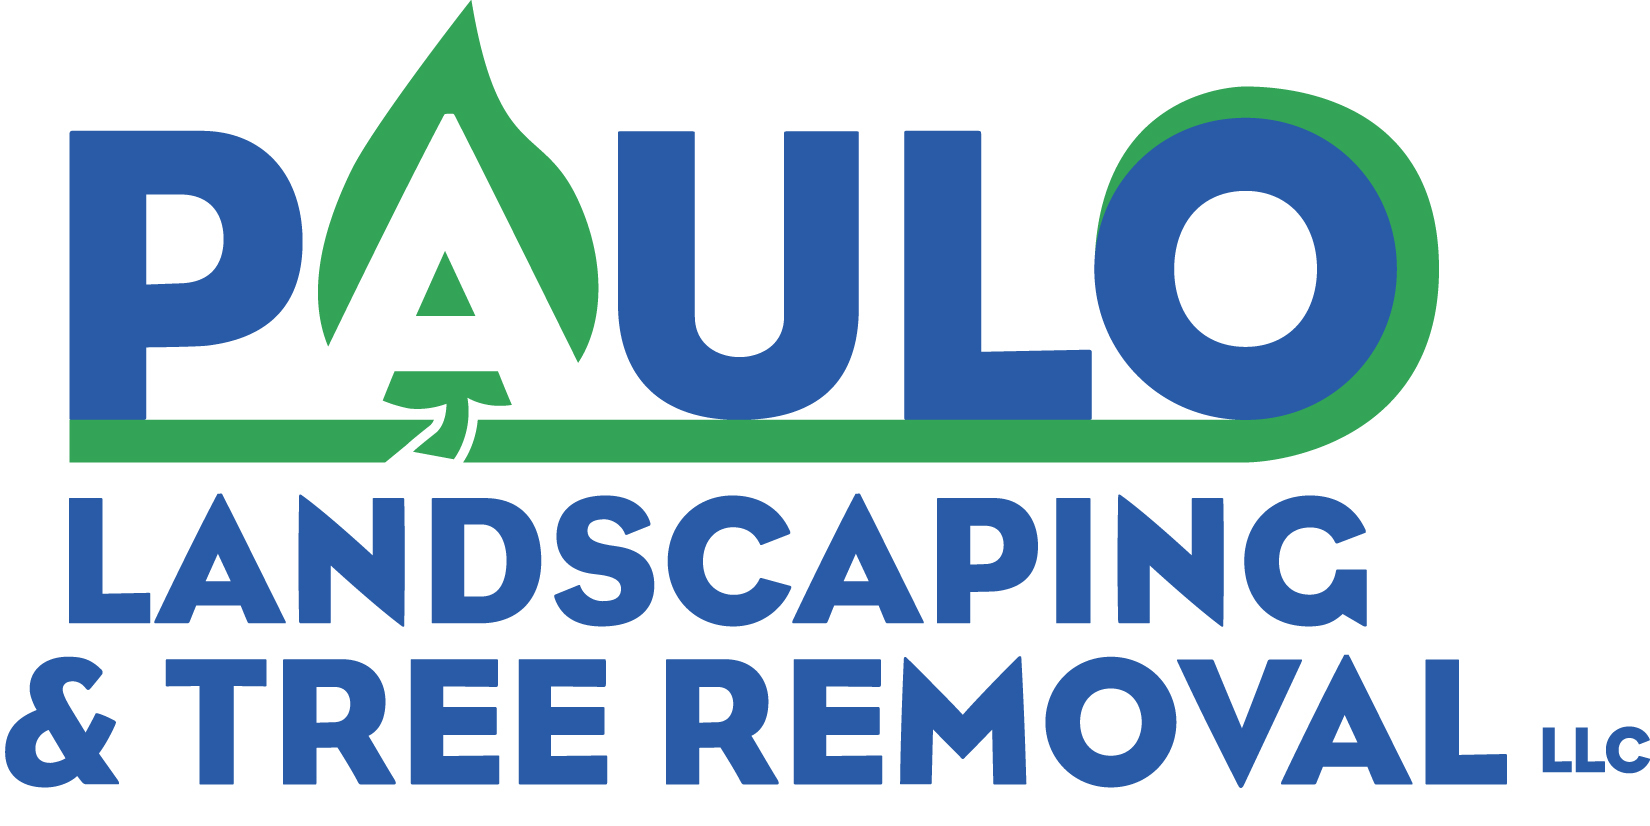 Paulo's Landscaping & Tree Removal LLC image 0